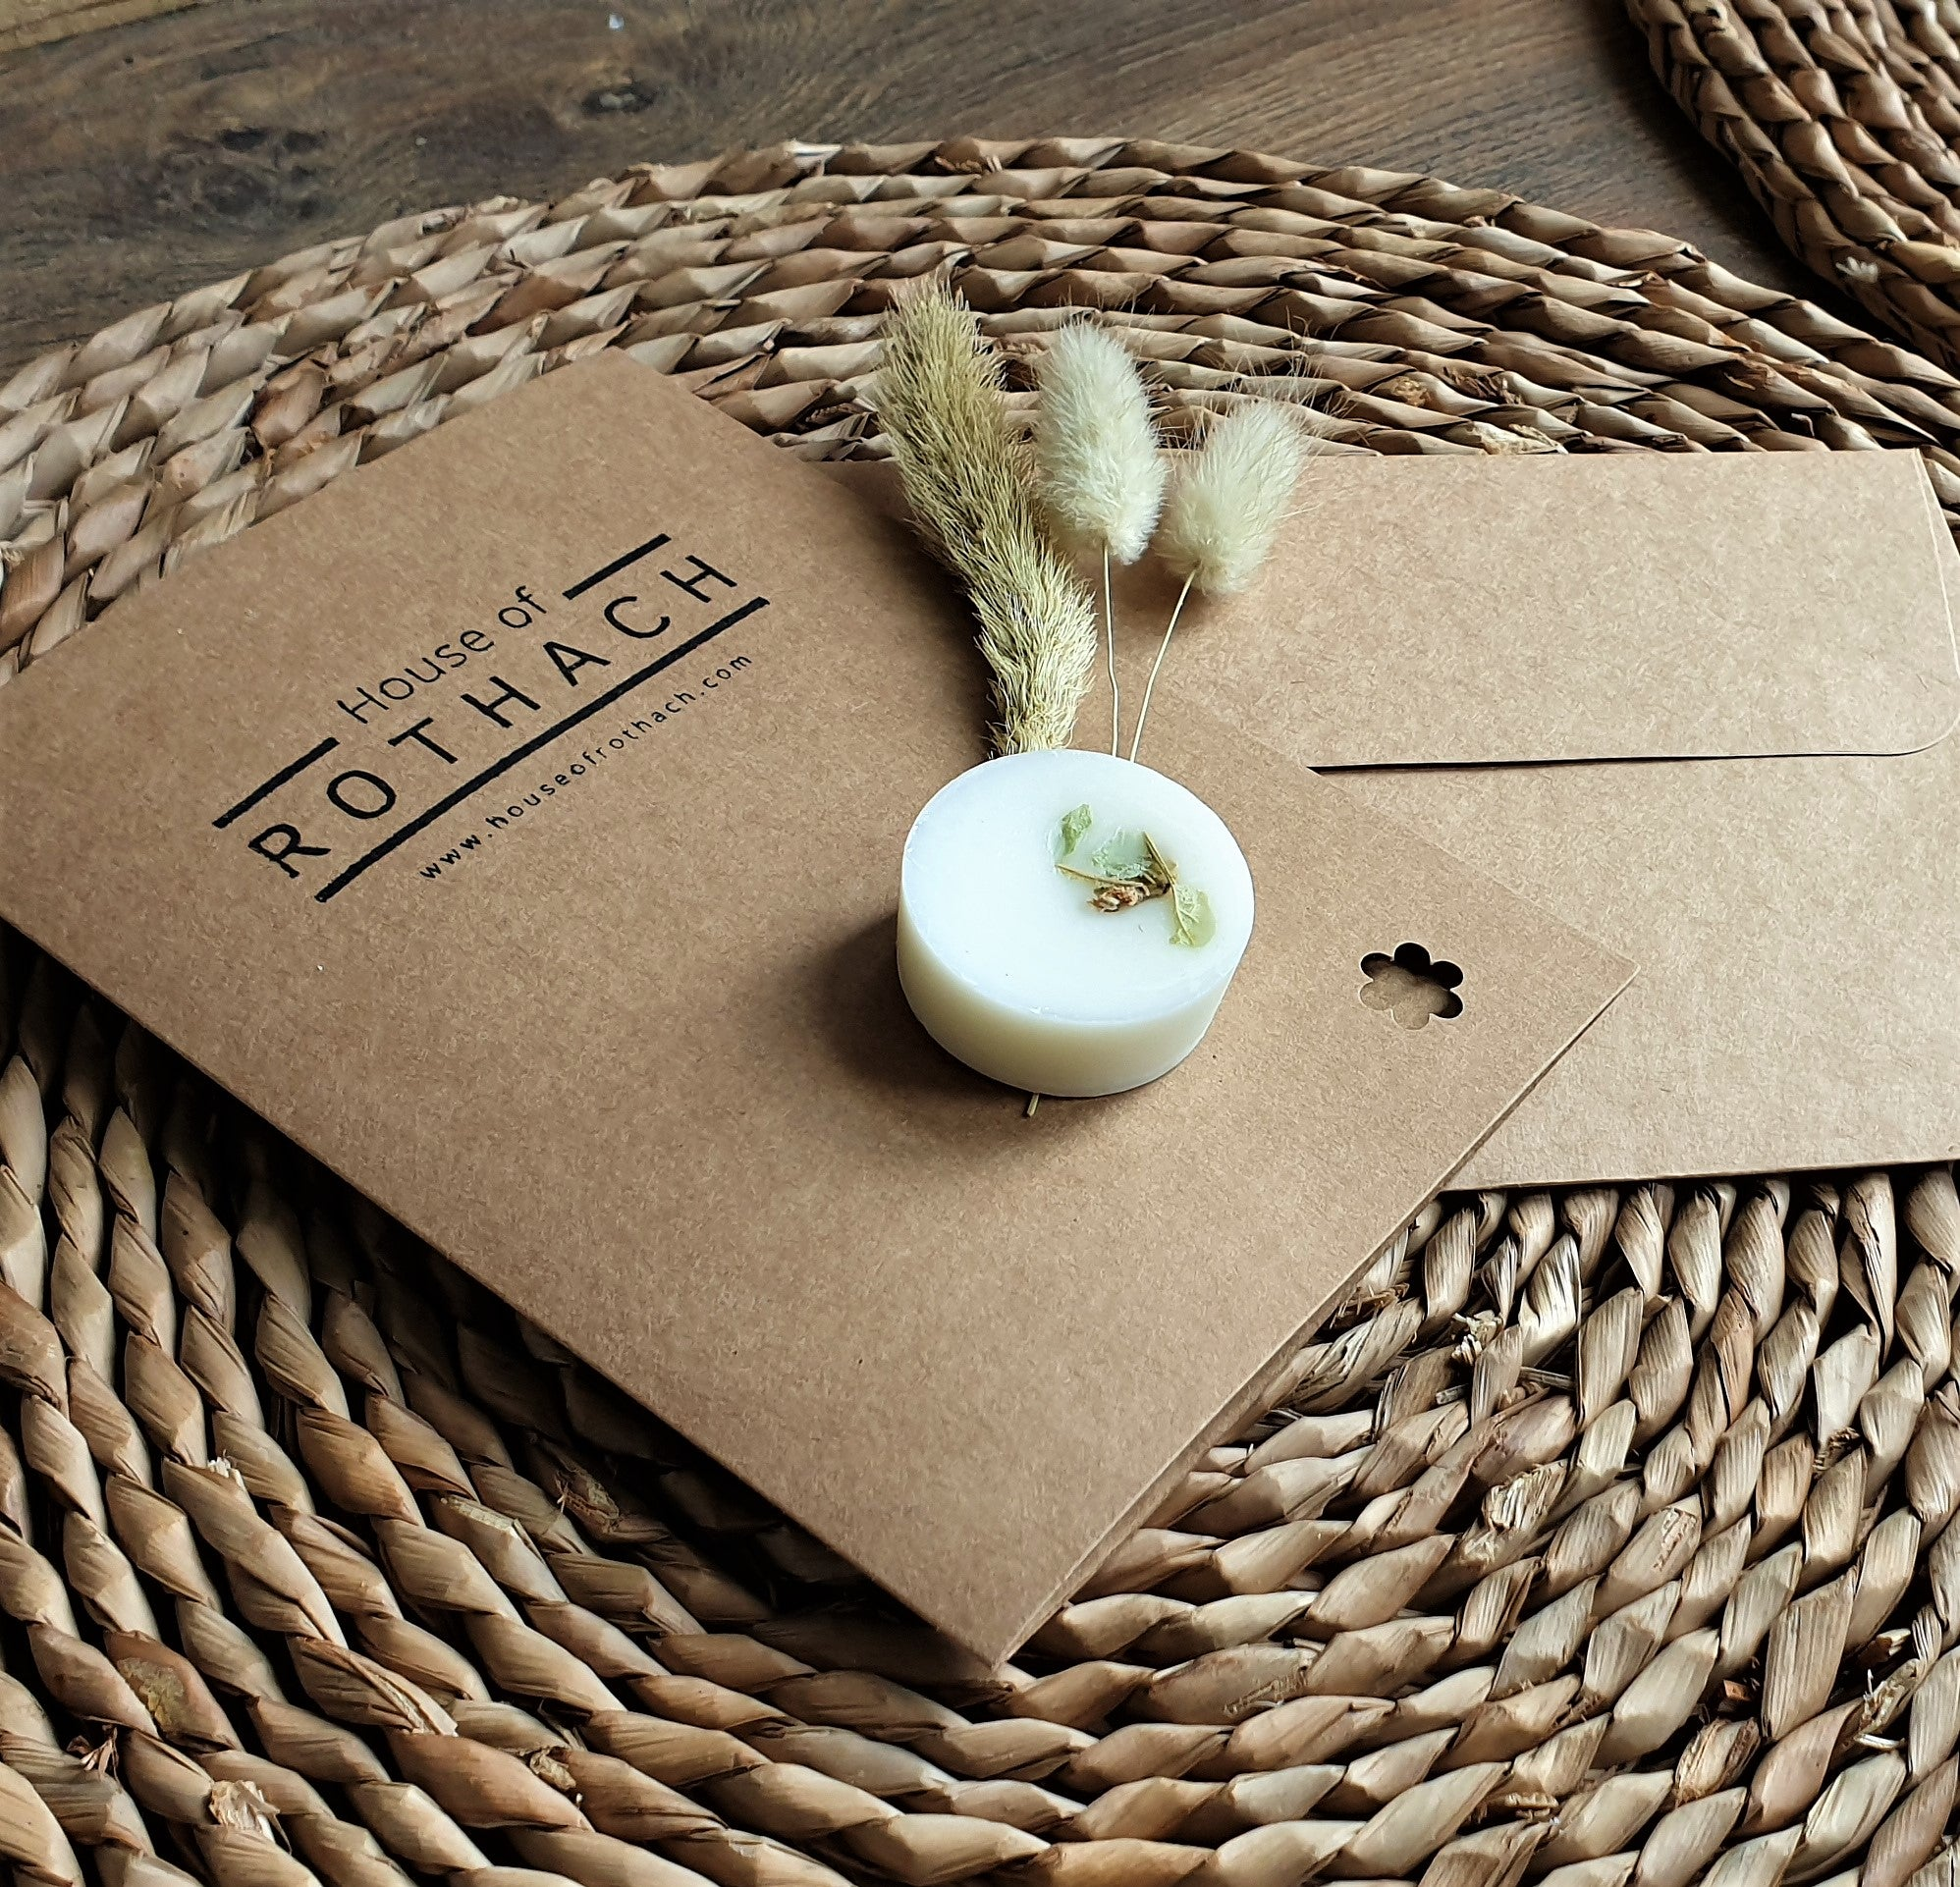 natural brown card with envelope sitting on a raffia mat on the floor. On top of the card is a single botanical wax melt with some dried flowers beside it. The card says  House of Rothach on it.